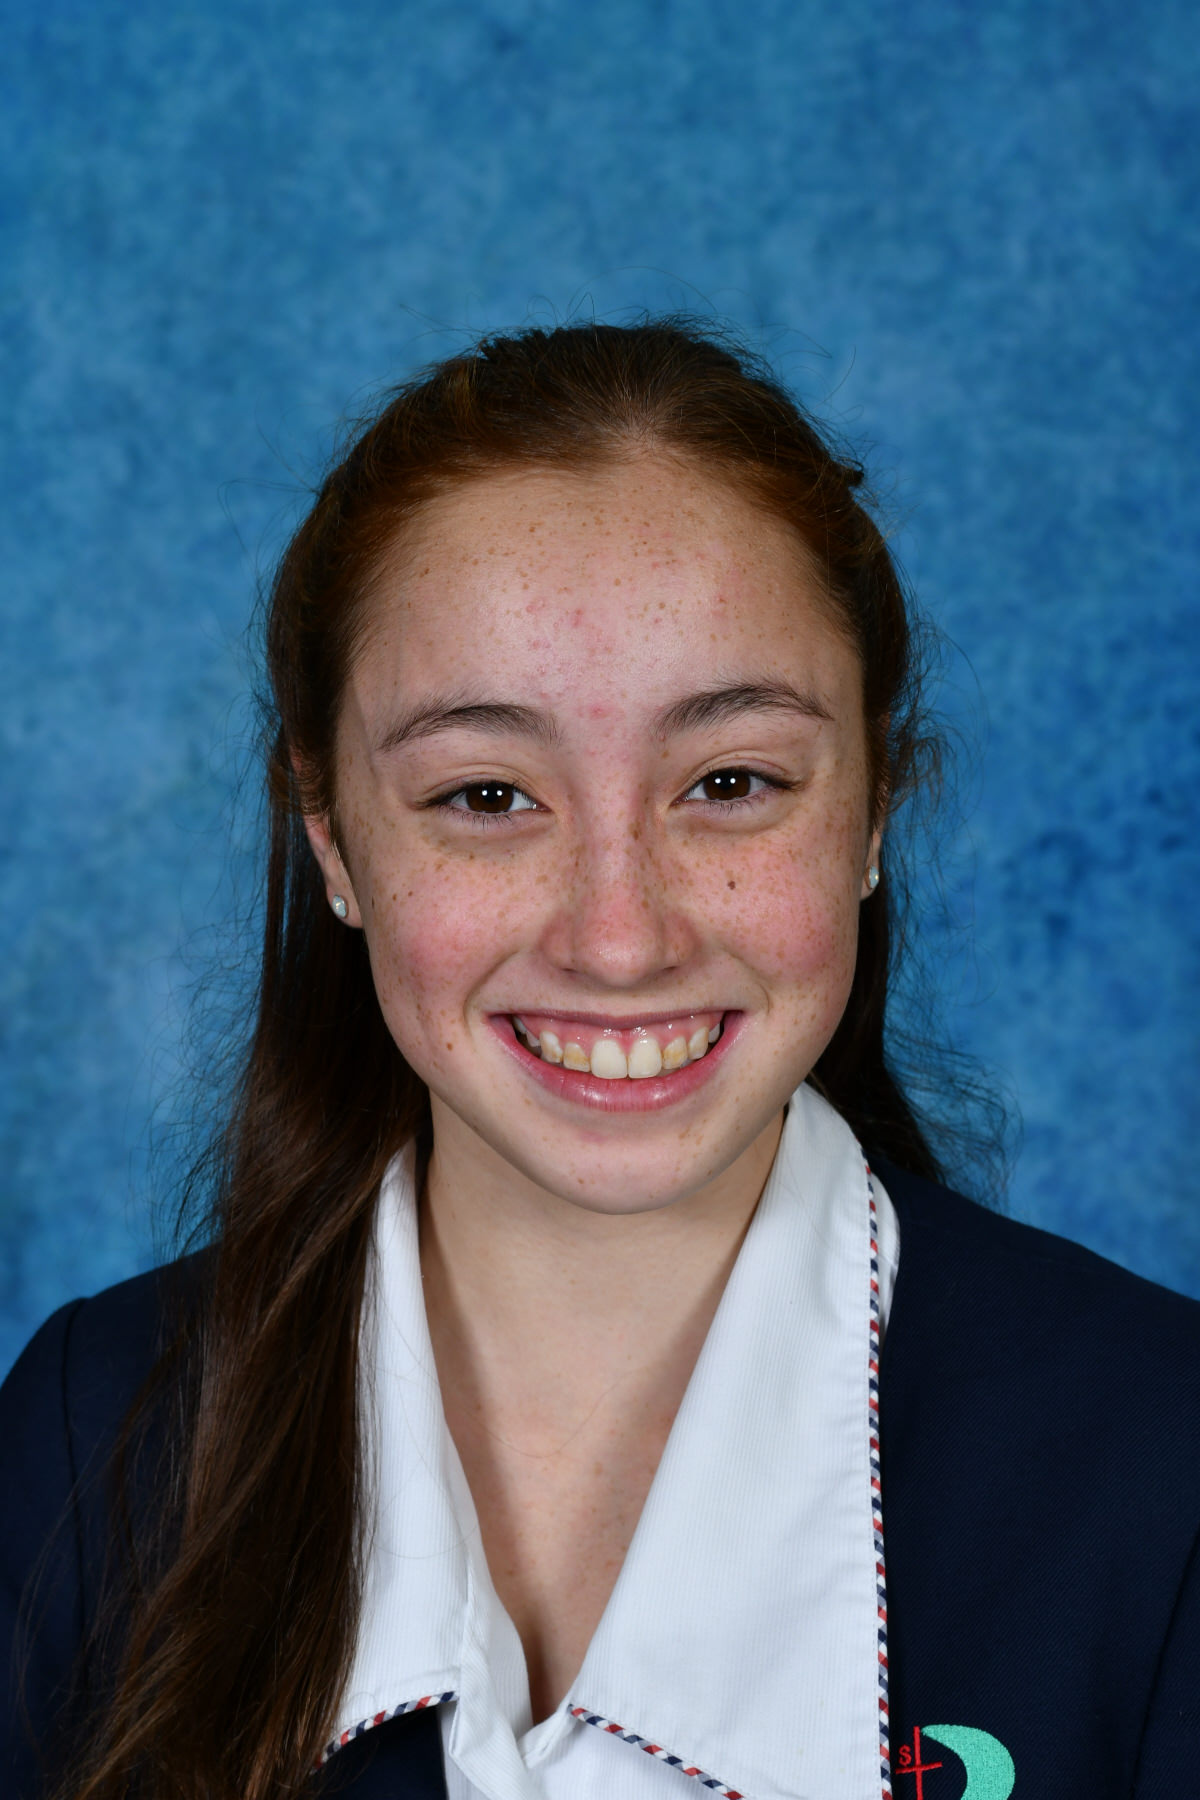 Good Luck Natalie at The National Swimming Championships